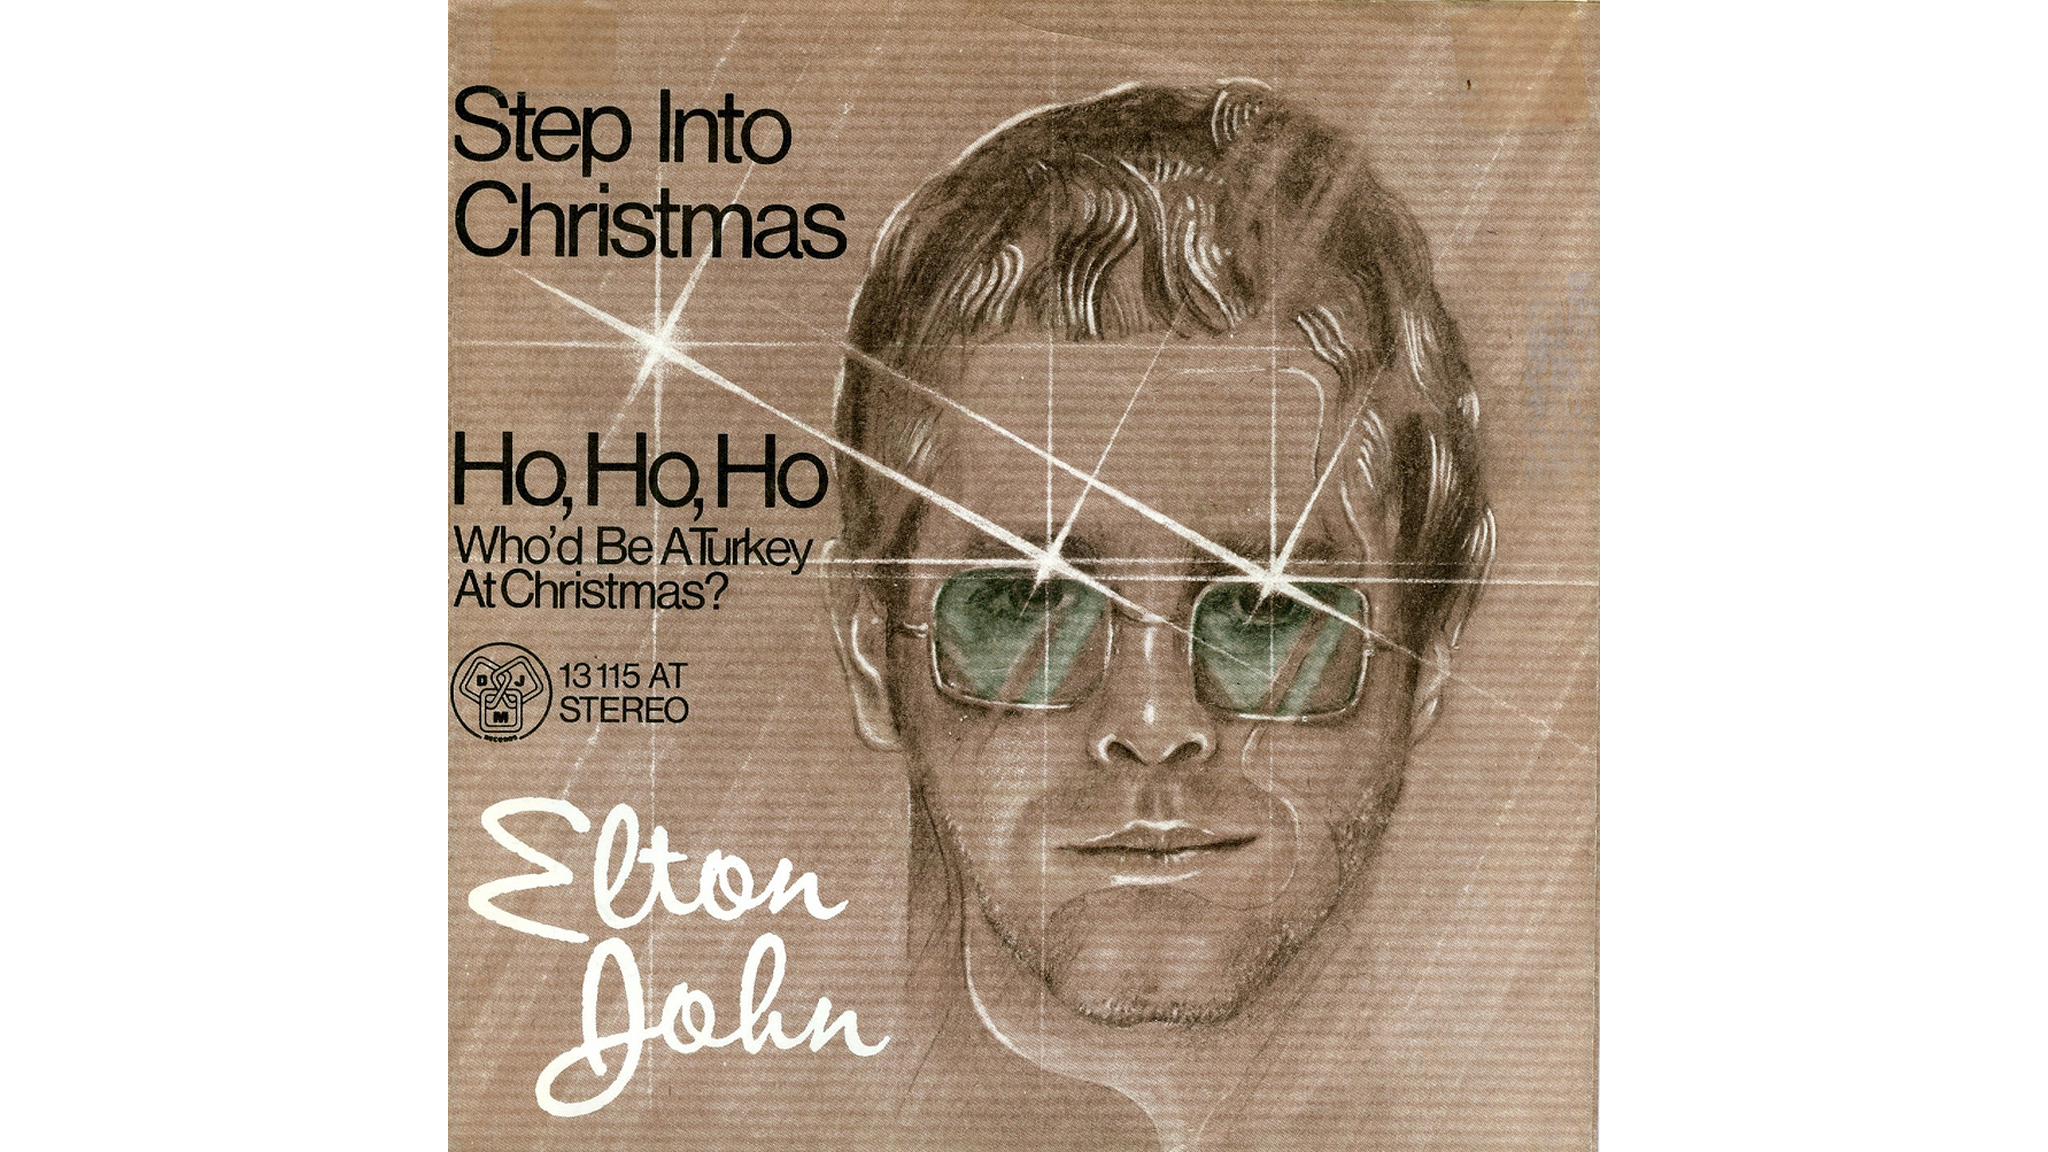 Elton John – 'Step Into Christmas' cover art